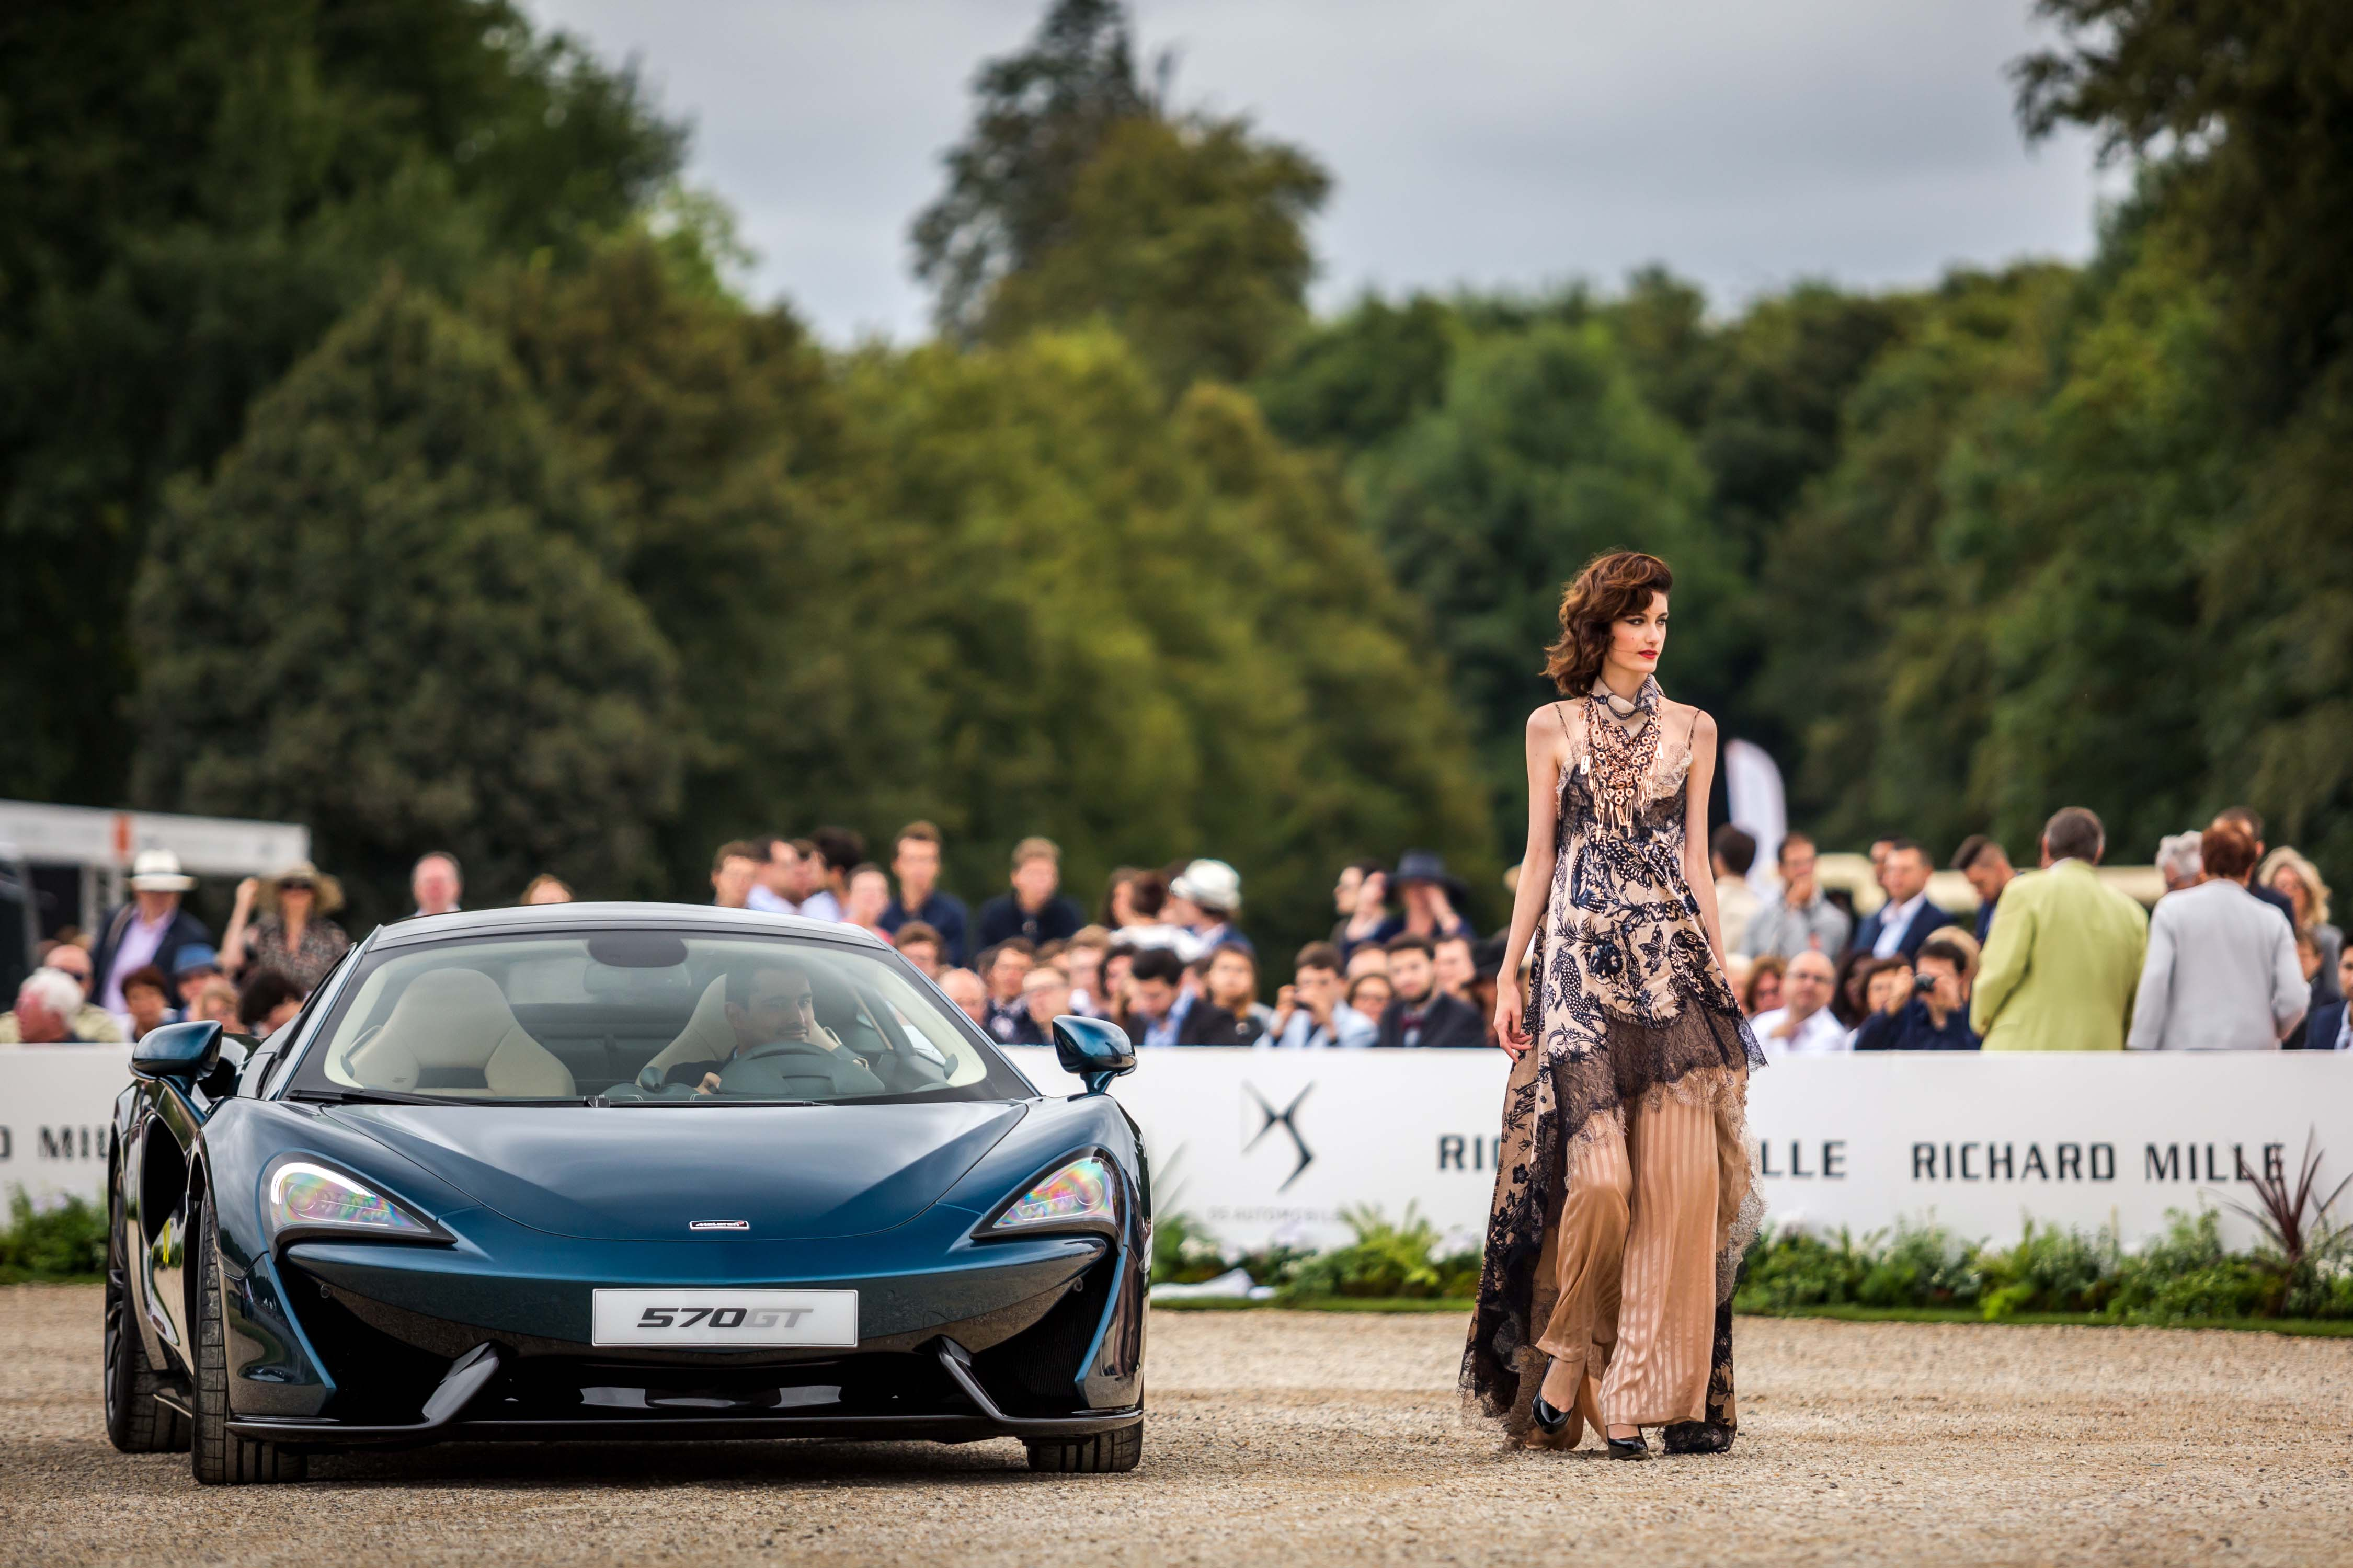 Parade of concept cars during Concours Art & Elegance Richard Mille 2016 at Chantilly on September 4th 2016 - Photo Alexis Goure / DPPI